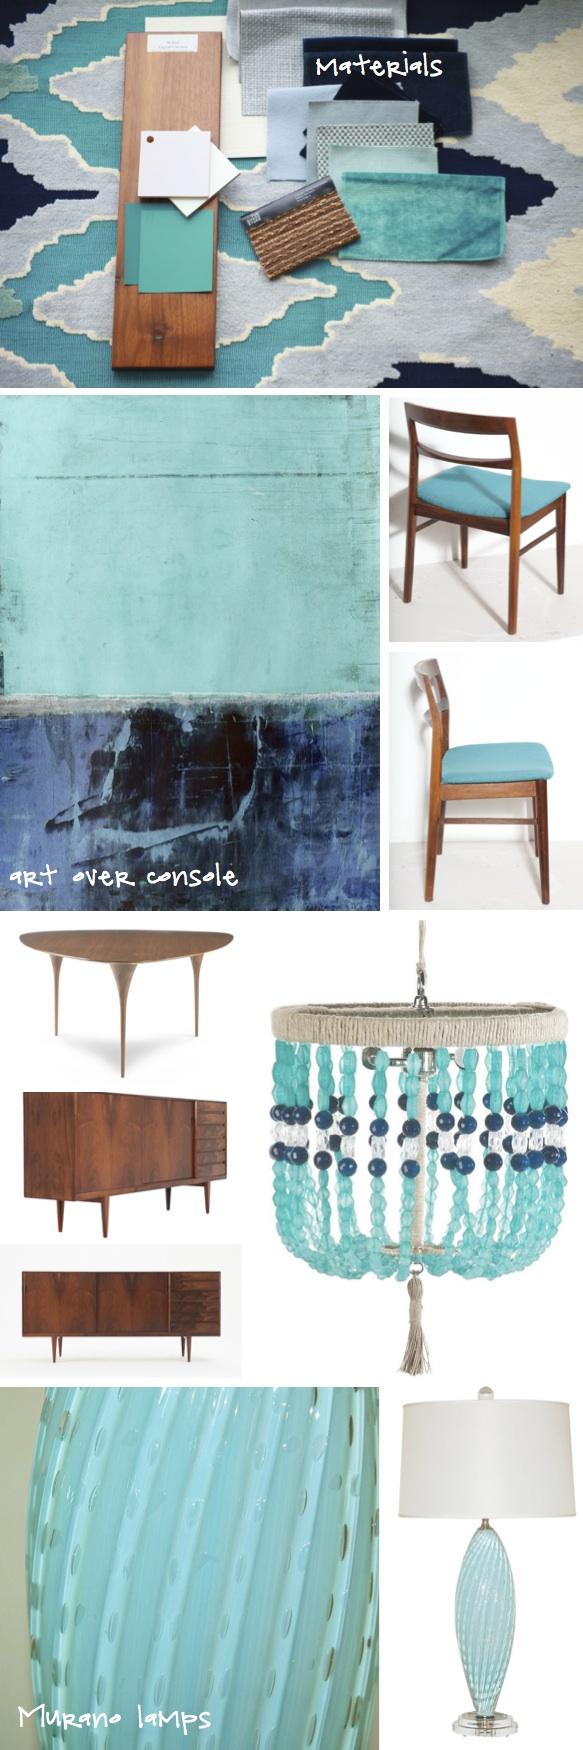 Kristina Crestin Design_Turquoise and Navy Dining Room